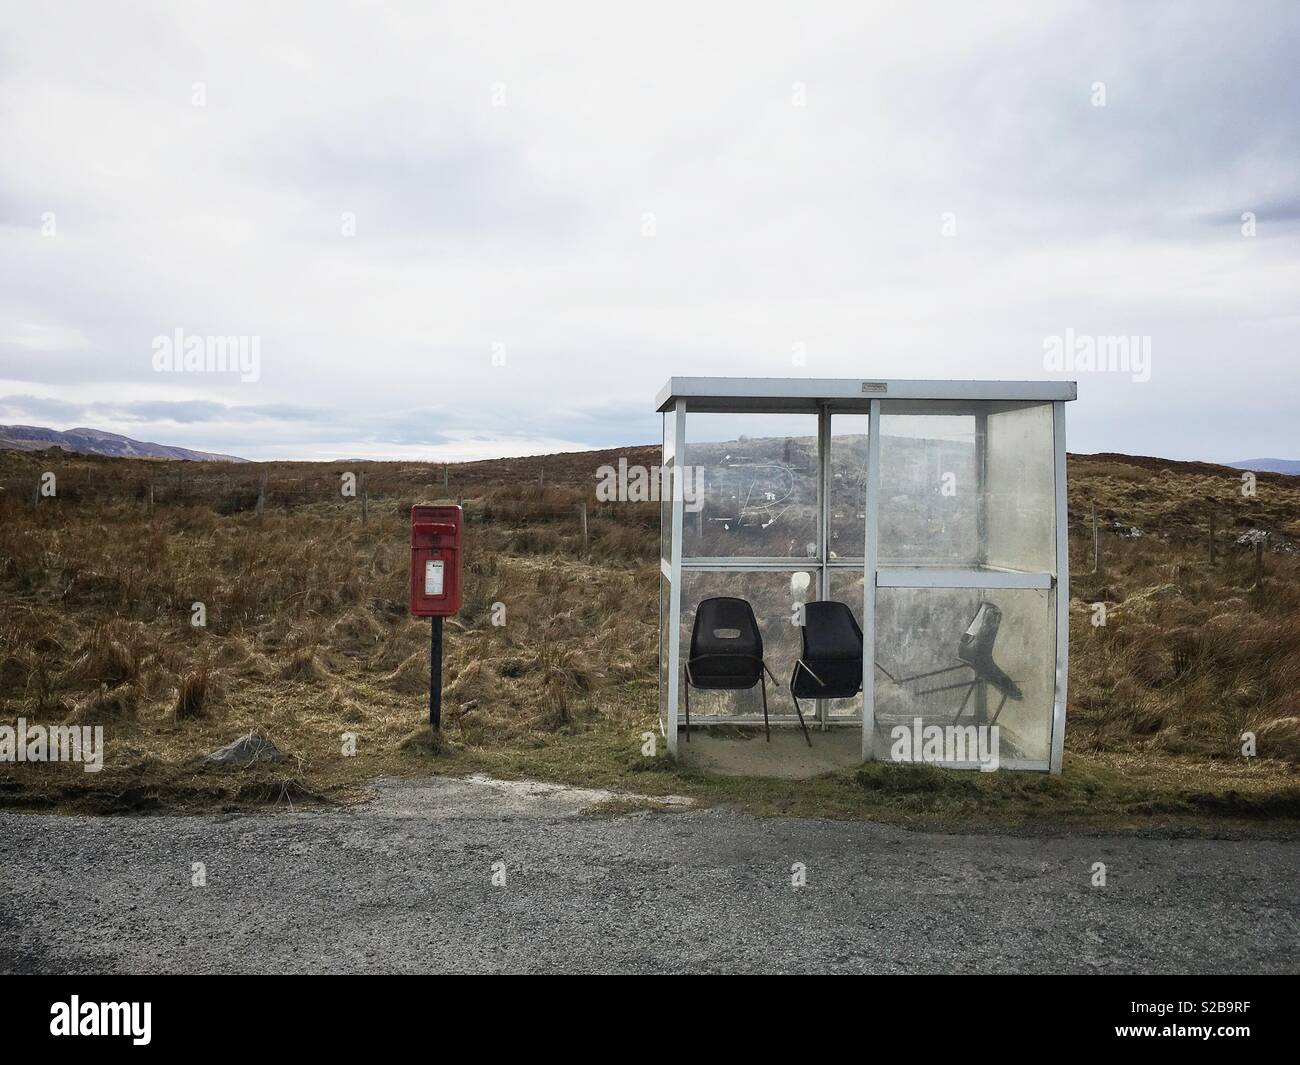 Rural bus stop and postbox, Isle of Skye, Scotland. - Stock Image